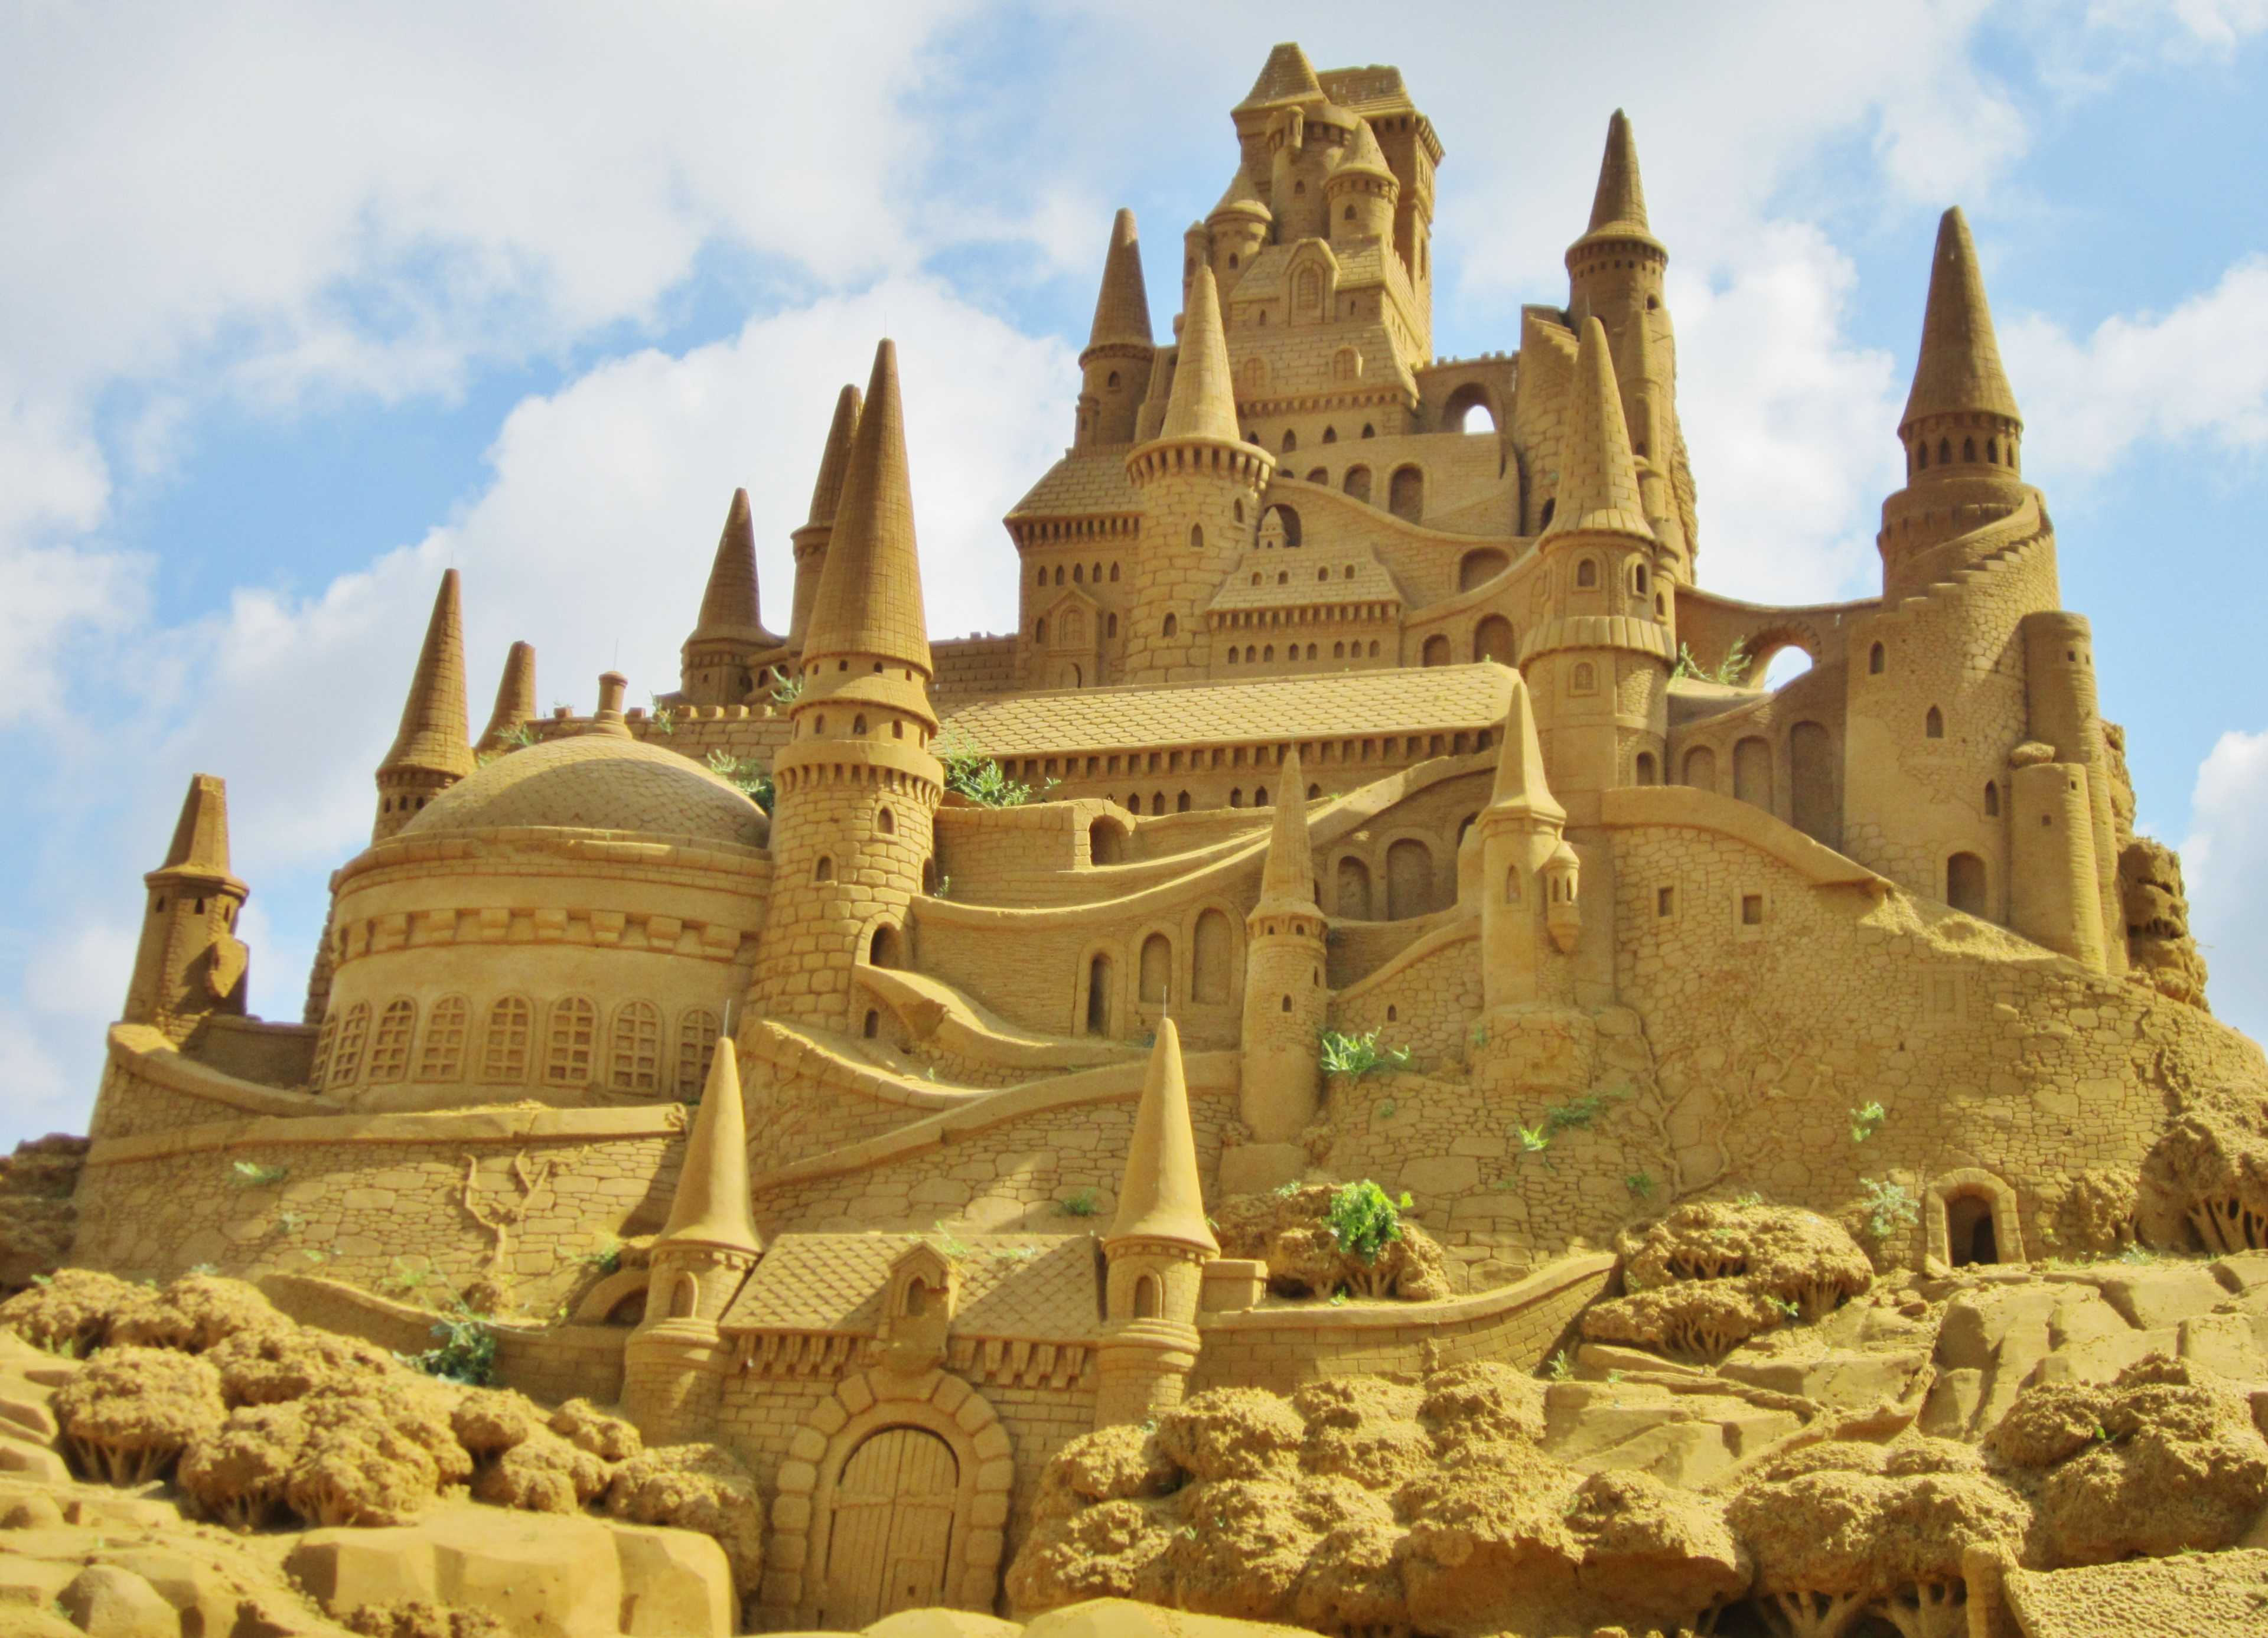 castles made in the sand pdf